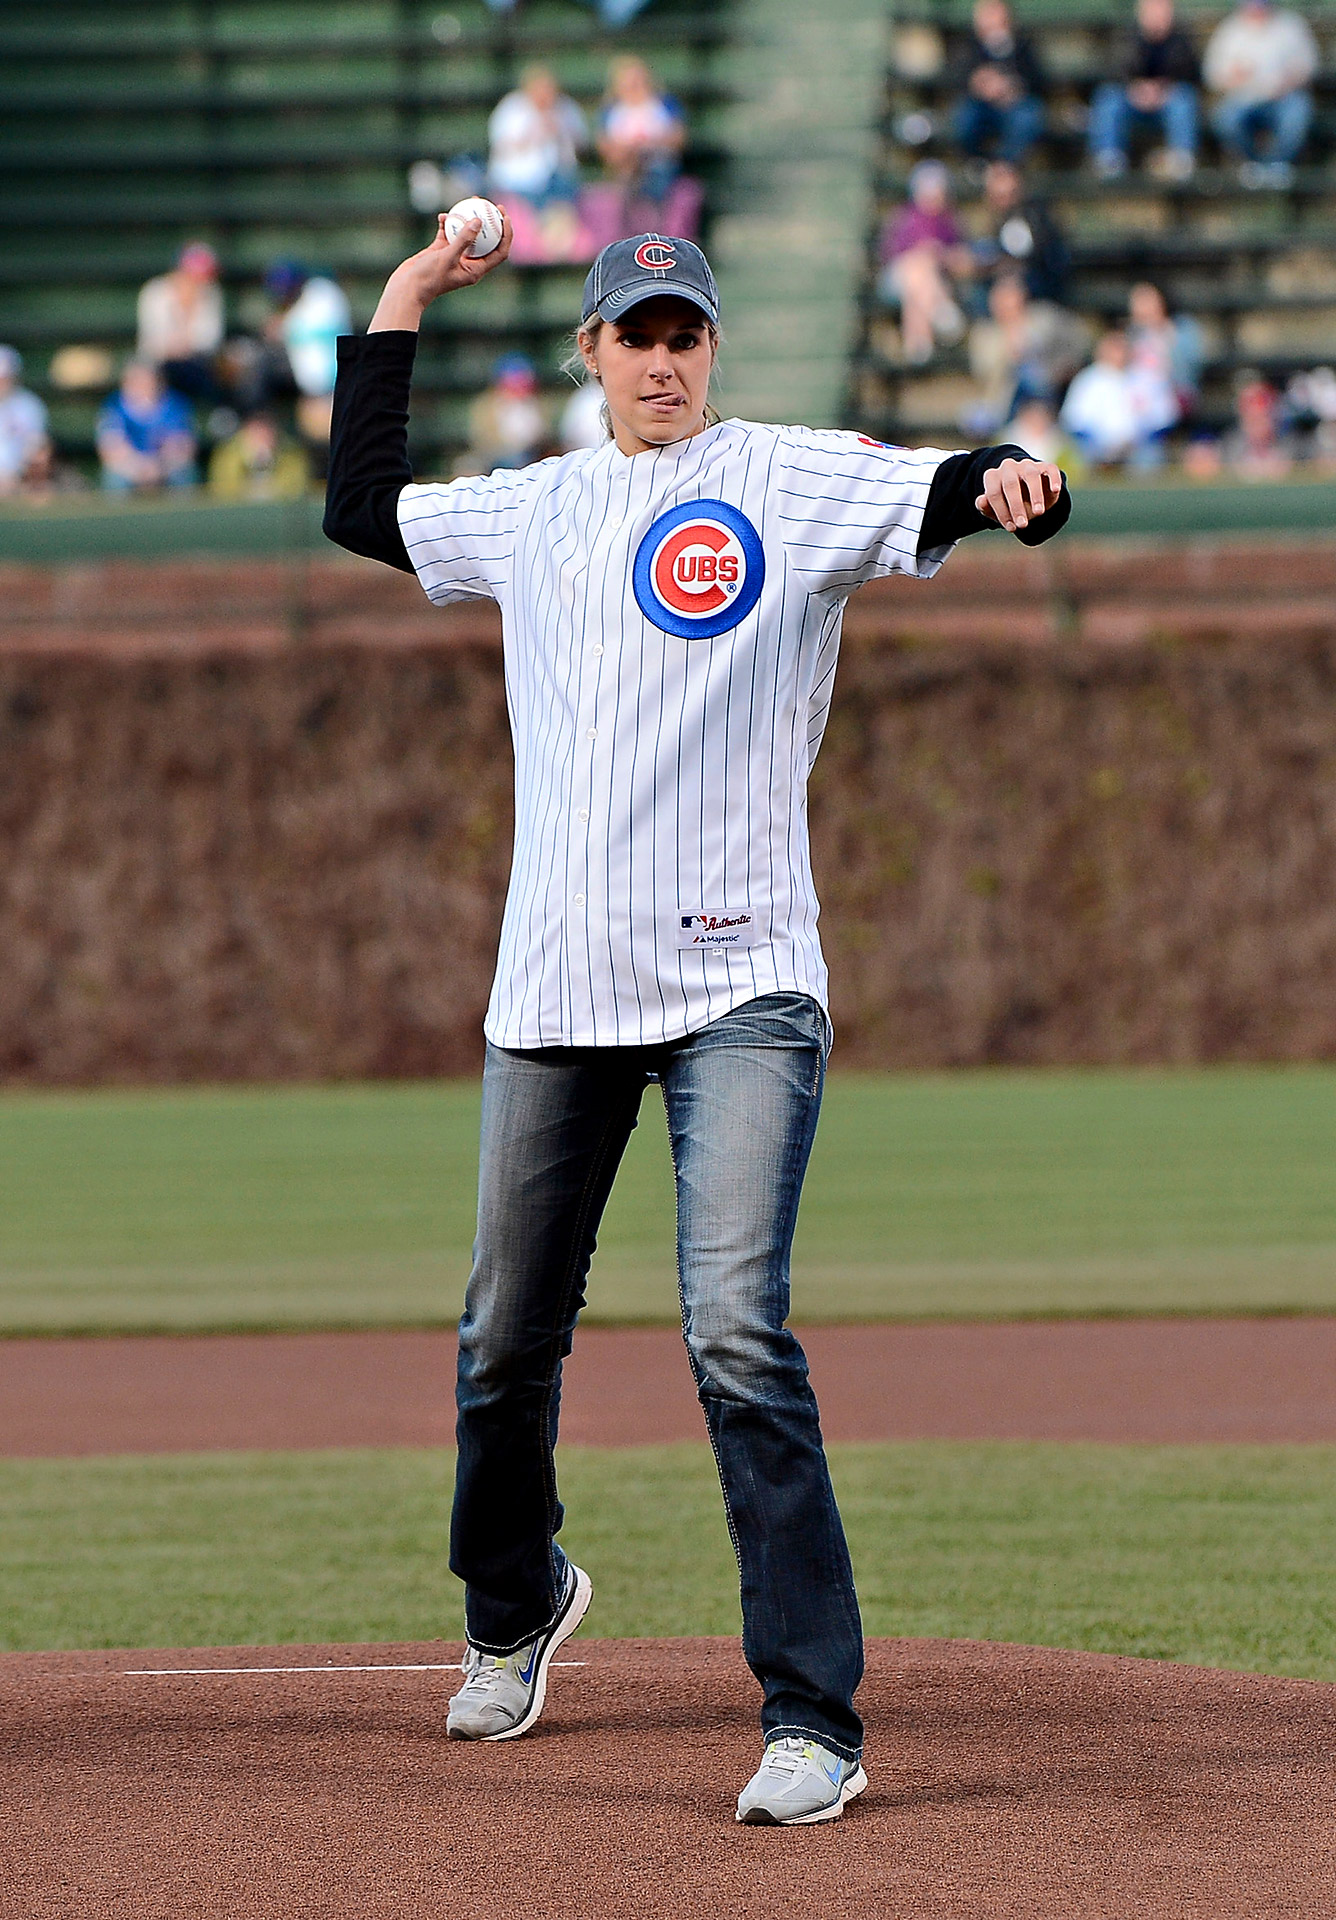 Elena Delle Donne has settled right into Chicago and, after throwing the first pitch at a Cubs game on one of her first nights in her new hometown, she named her Great Dane Wrigley.